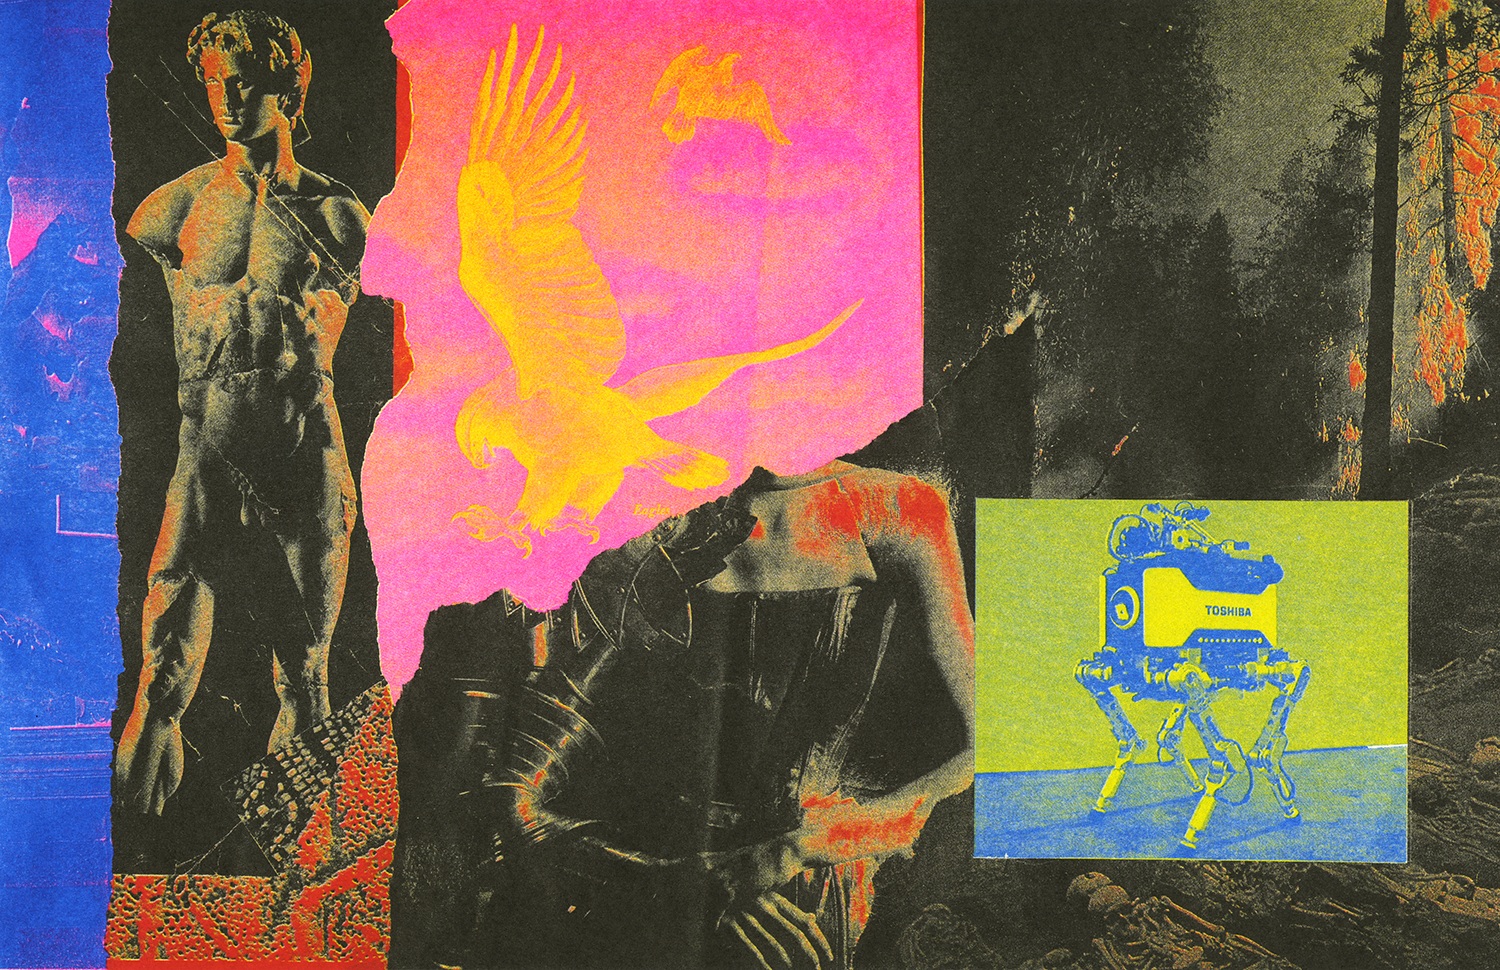 "<p ""="""">Here is a colorful Risograph print by Pan Terzis, featuring classical, technological, and imaginary creatures."